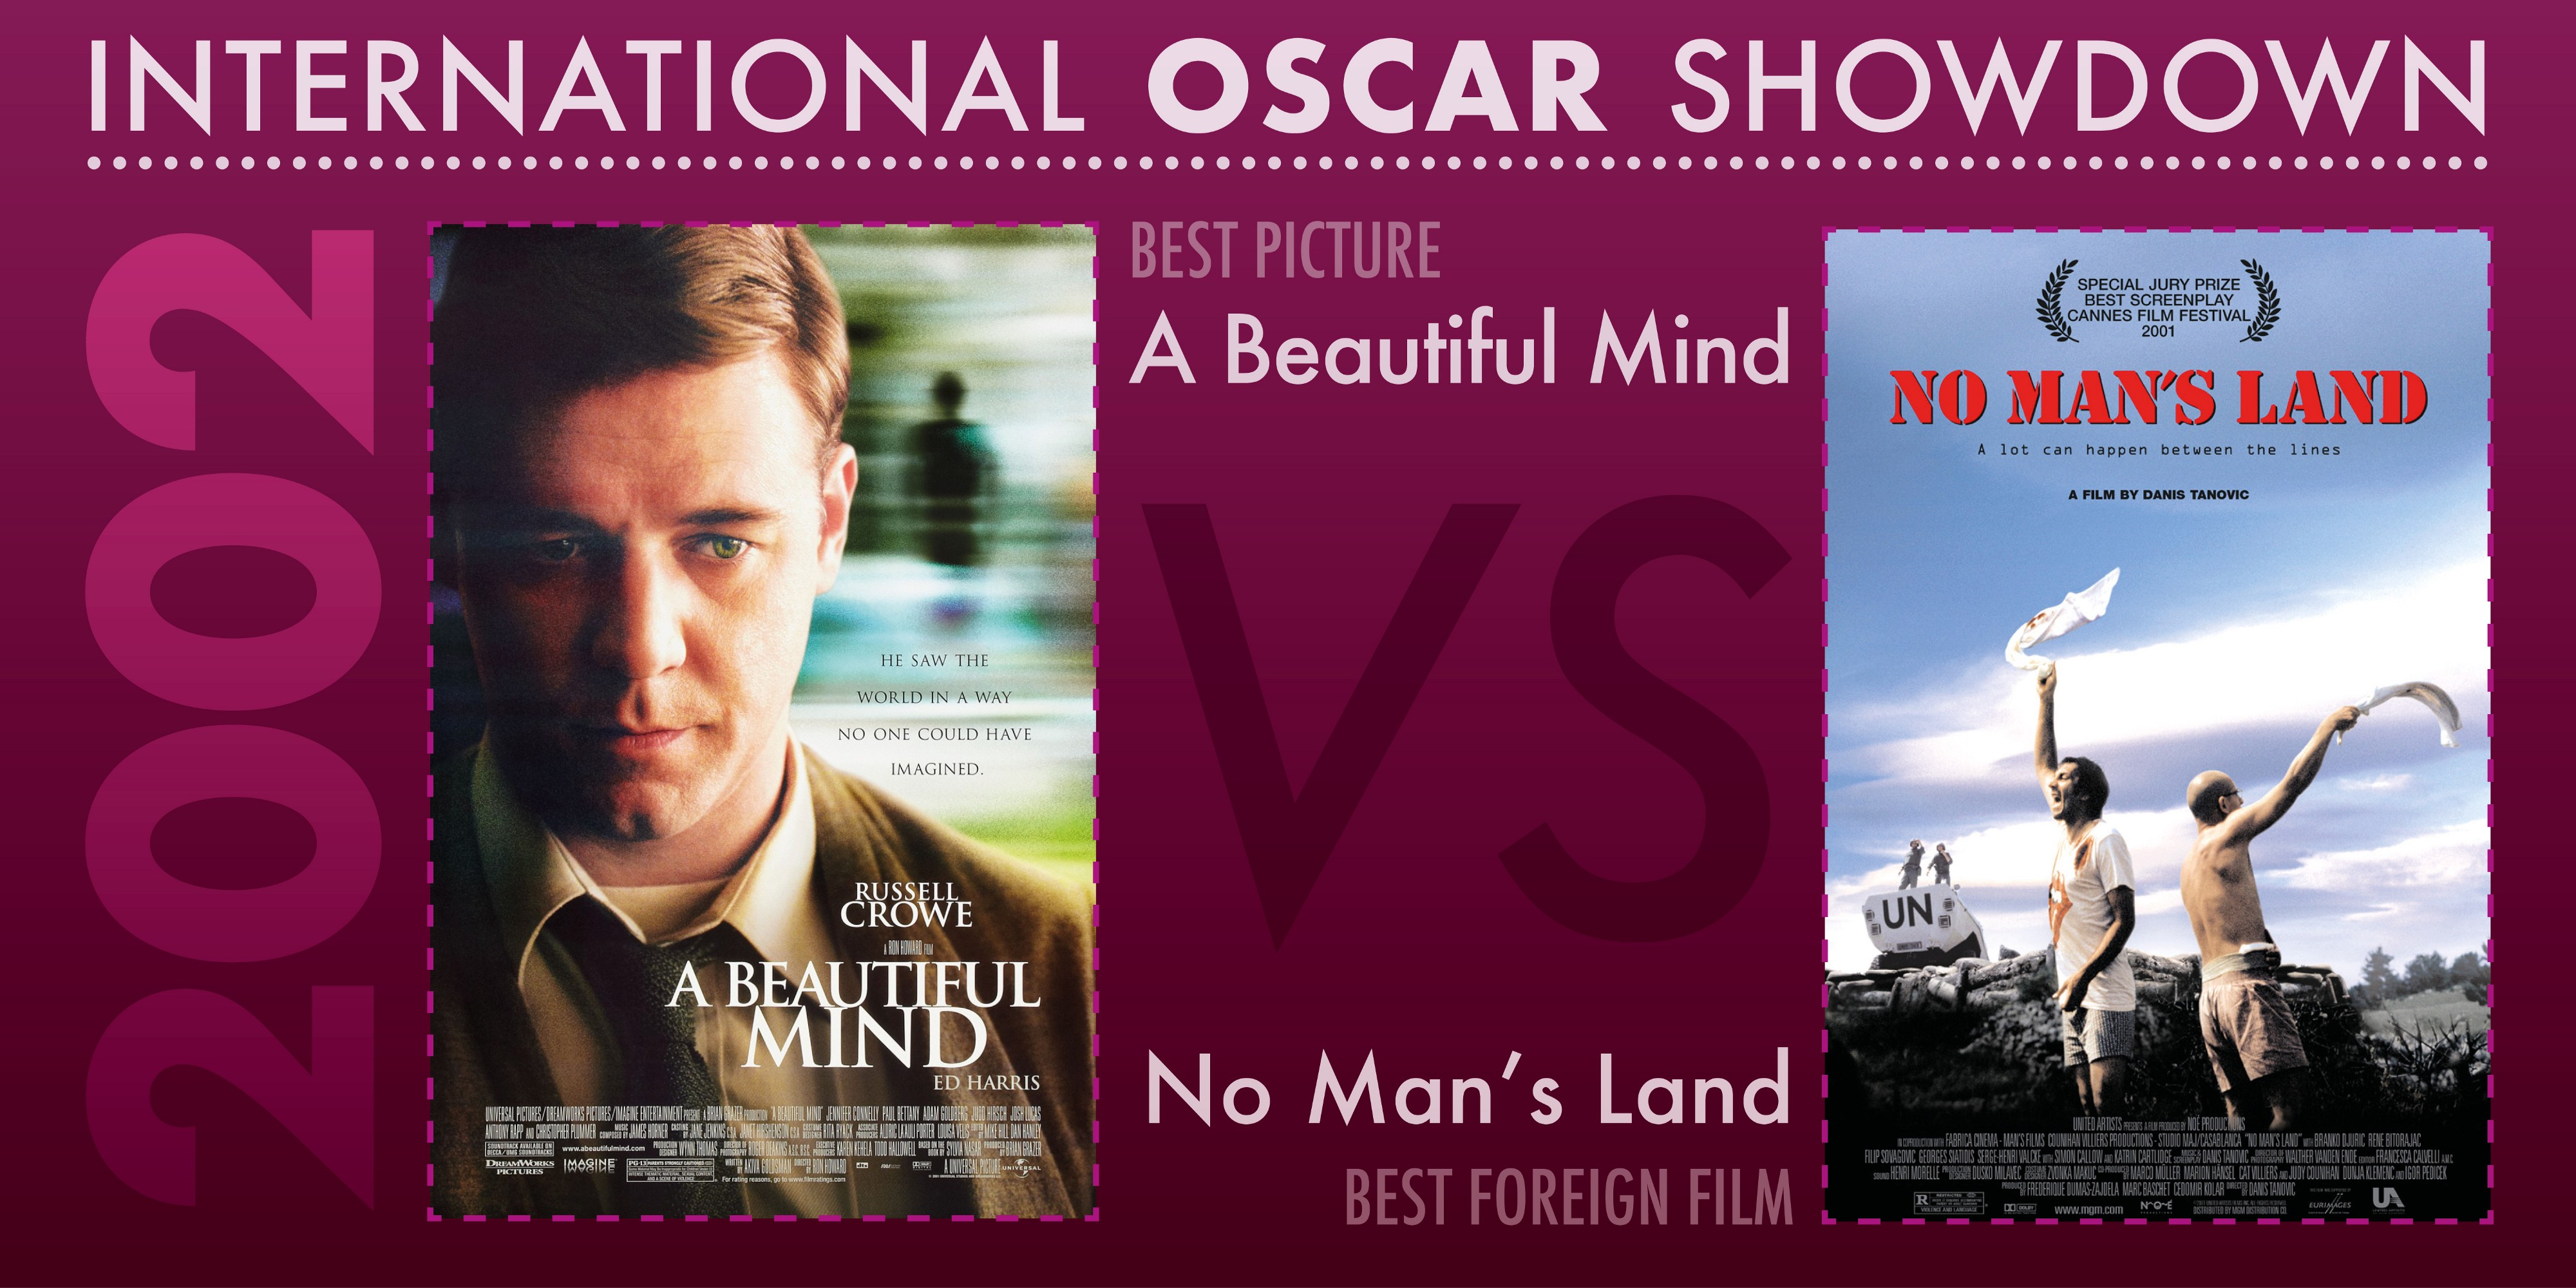 The 2002 International Oscar Showdown features A Beautiful Mind versus No Man's Land